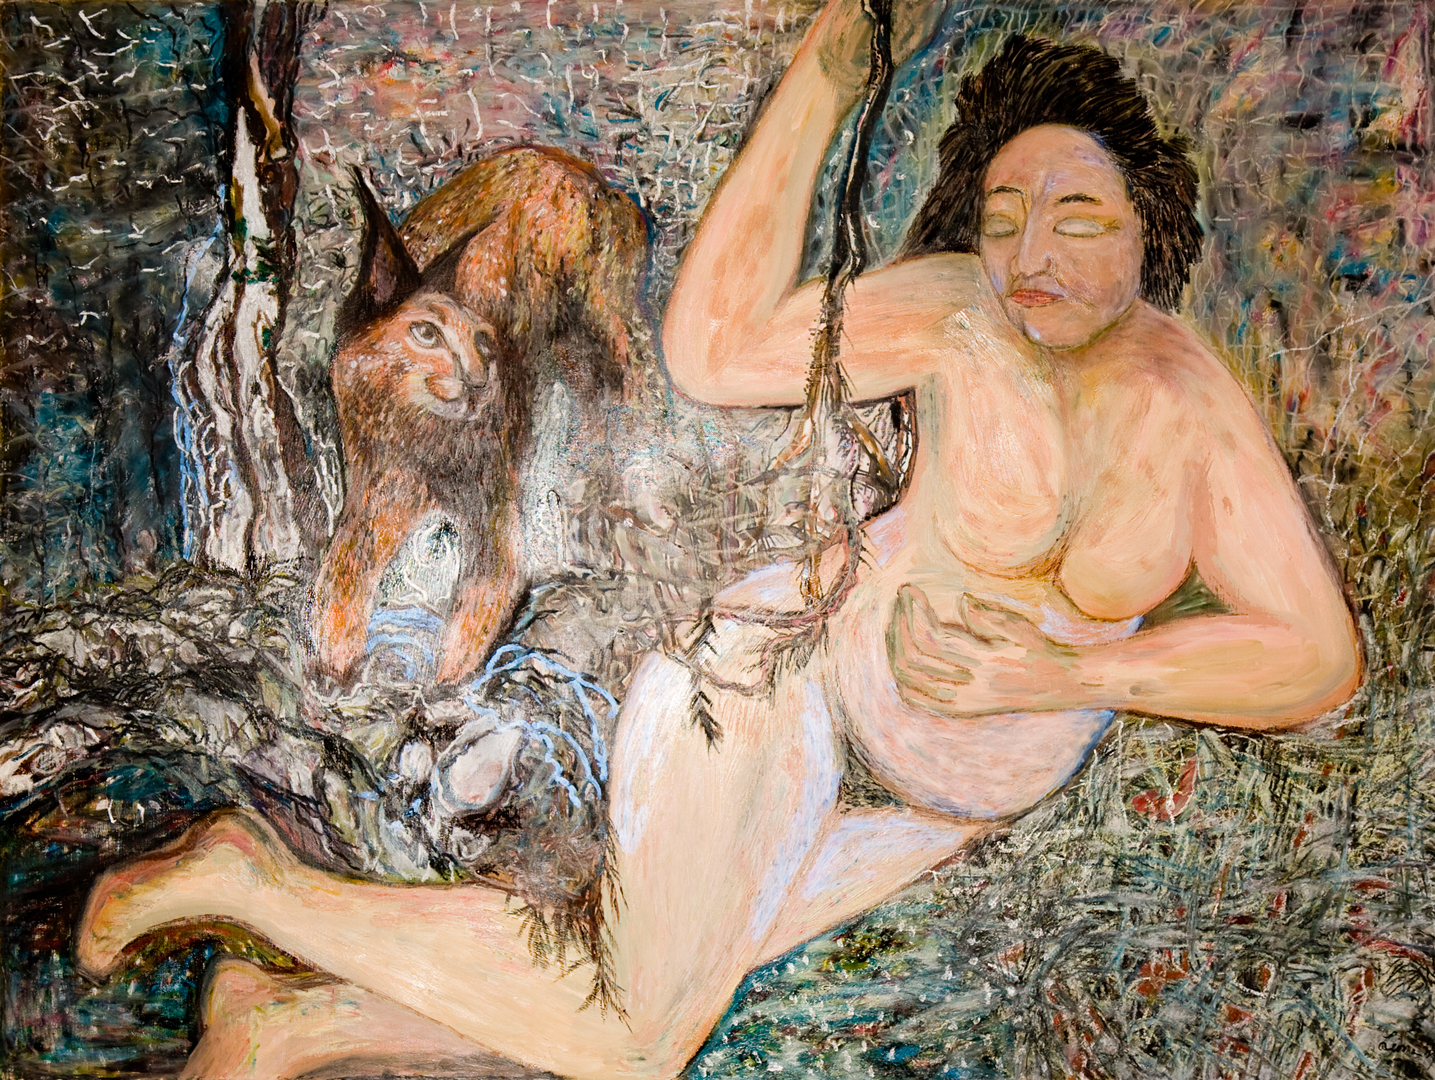 Old Woman with Lynx, oil, 2002